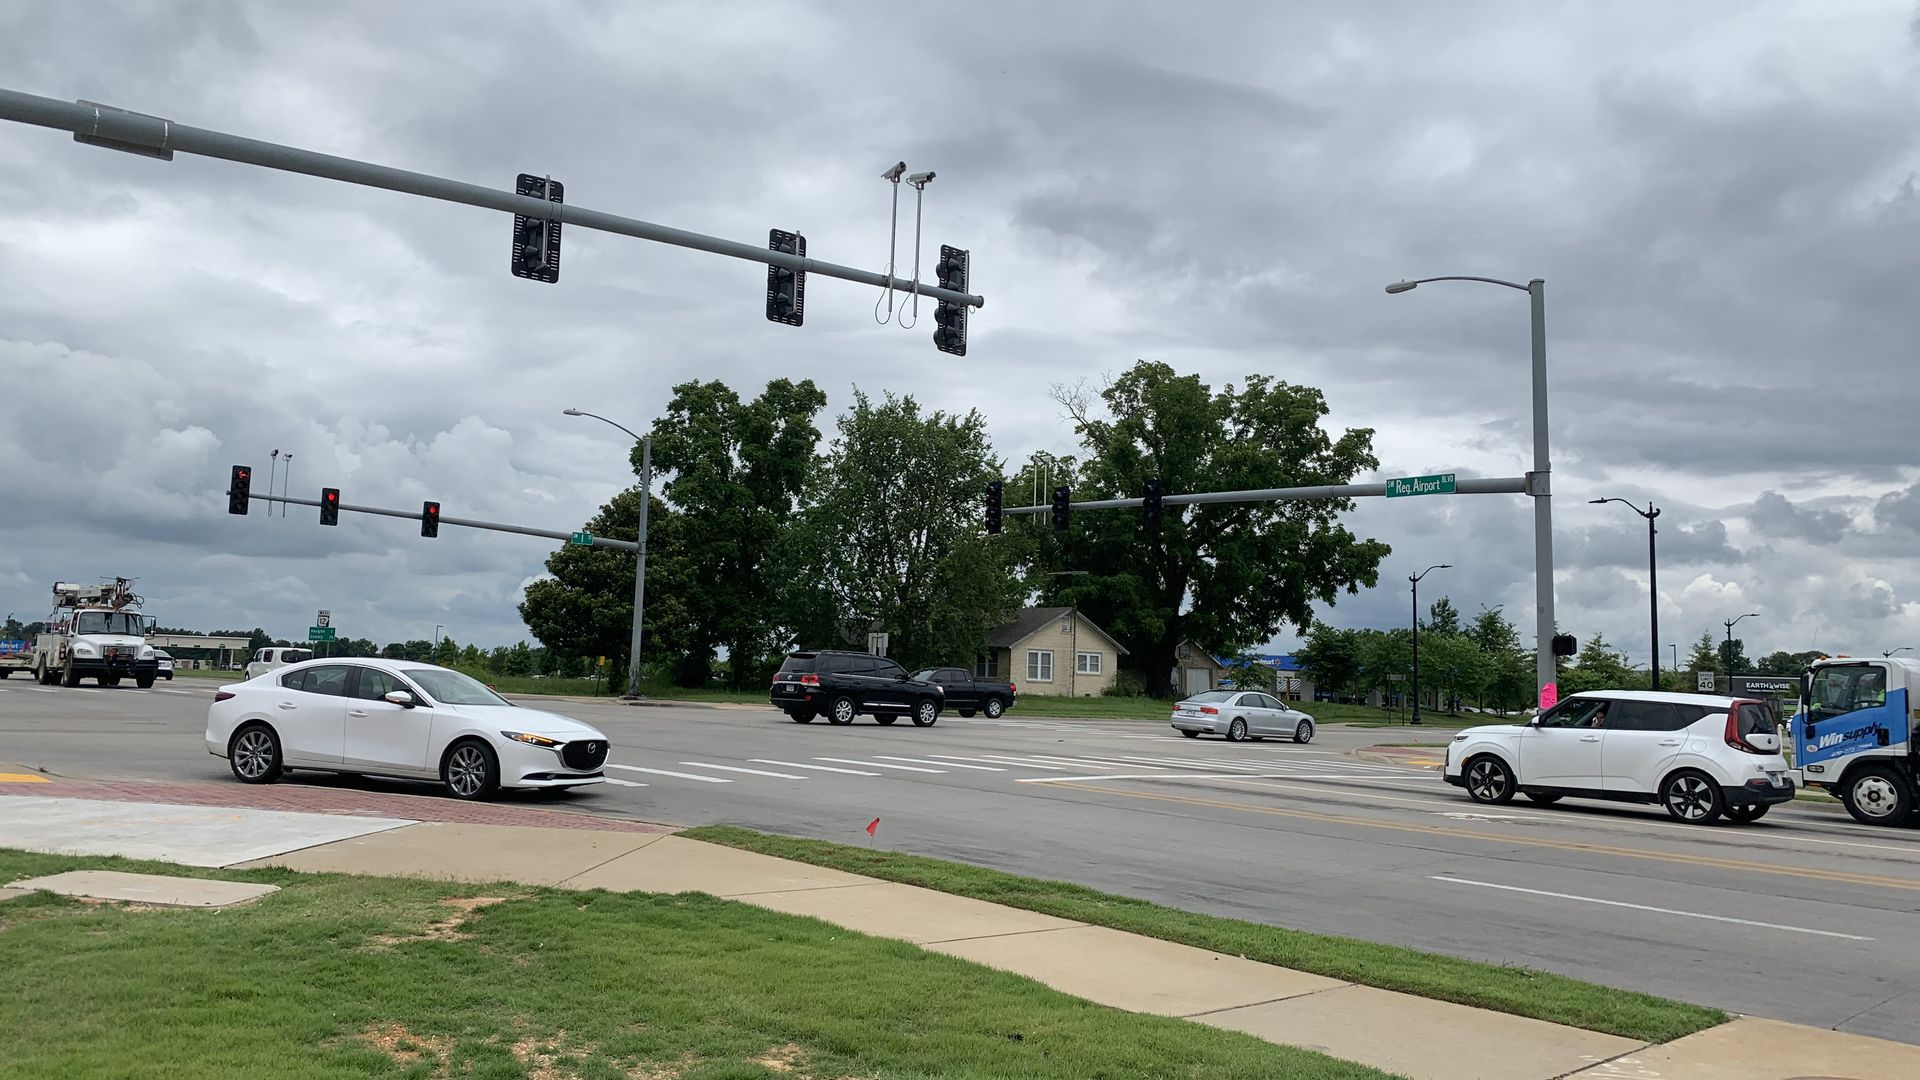 Cars drive through an intersection in Bentonville